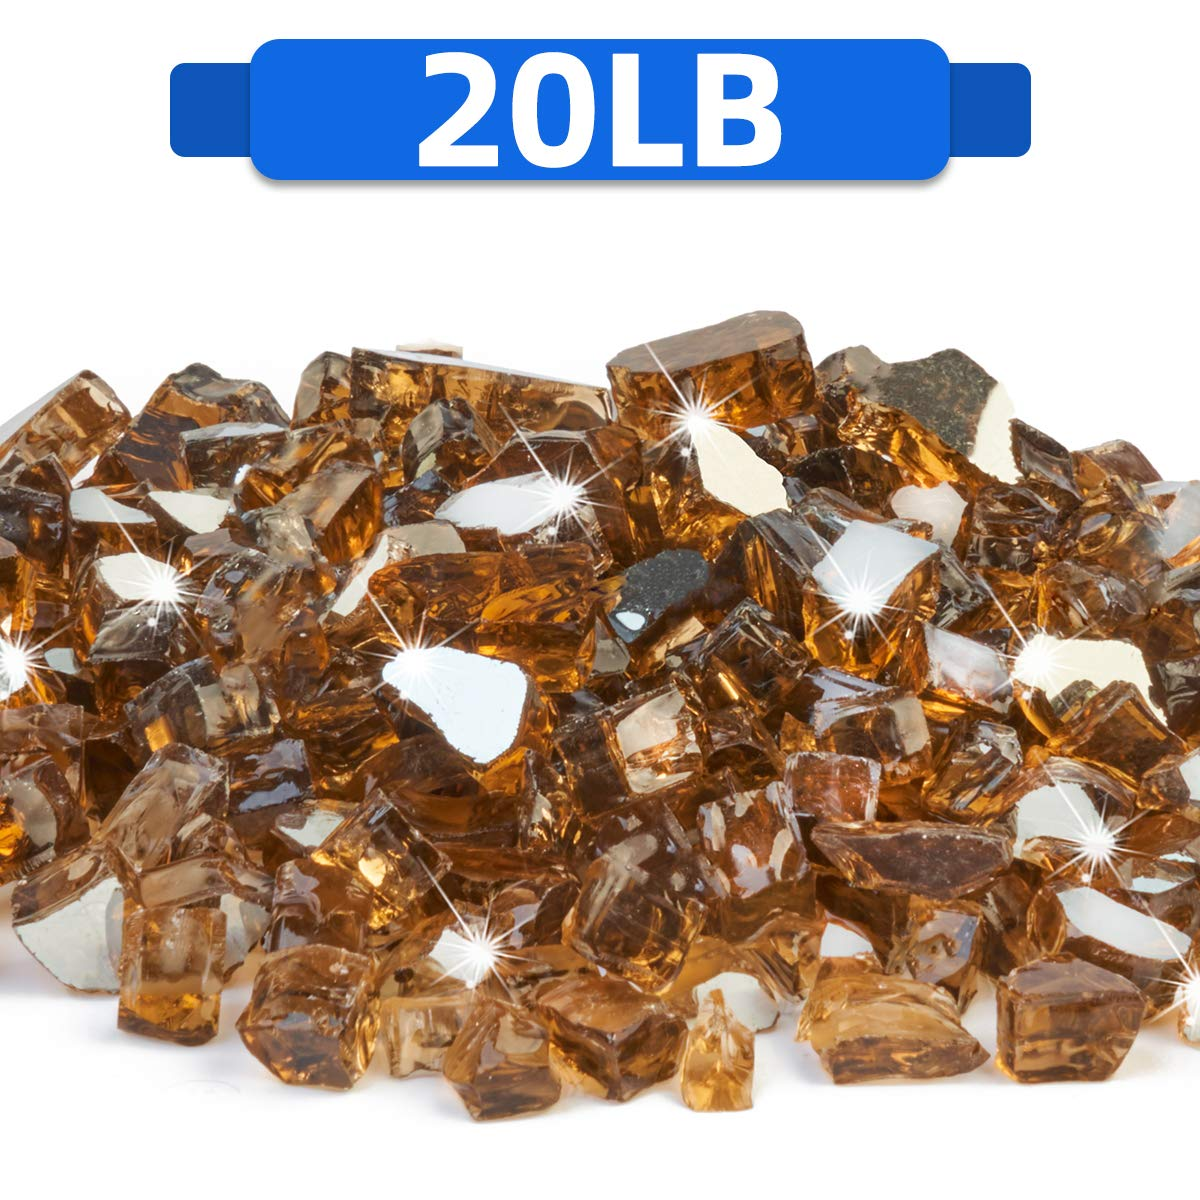 FutureWay Fire Glass for Fire Pit, Amber Brown Reflective Fire Glass Rocks for Indoor and      Outdoor Fireplace Fire Table, 20 Pound by FutureWay